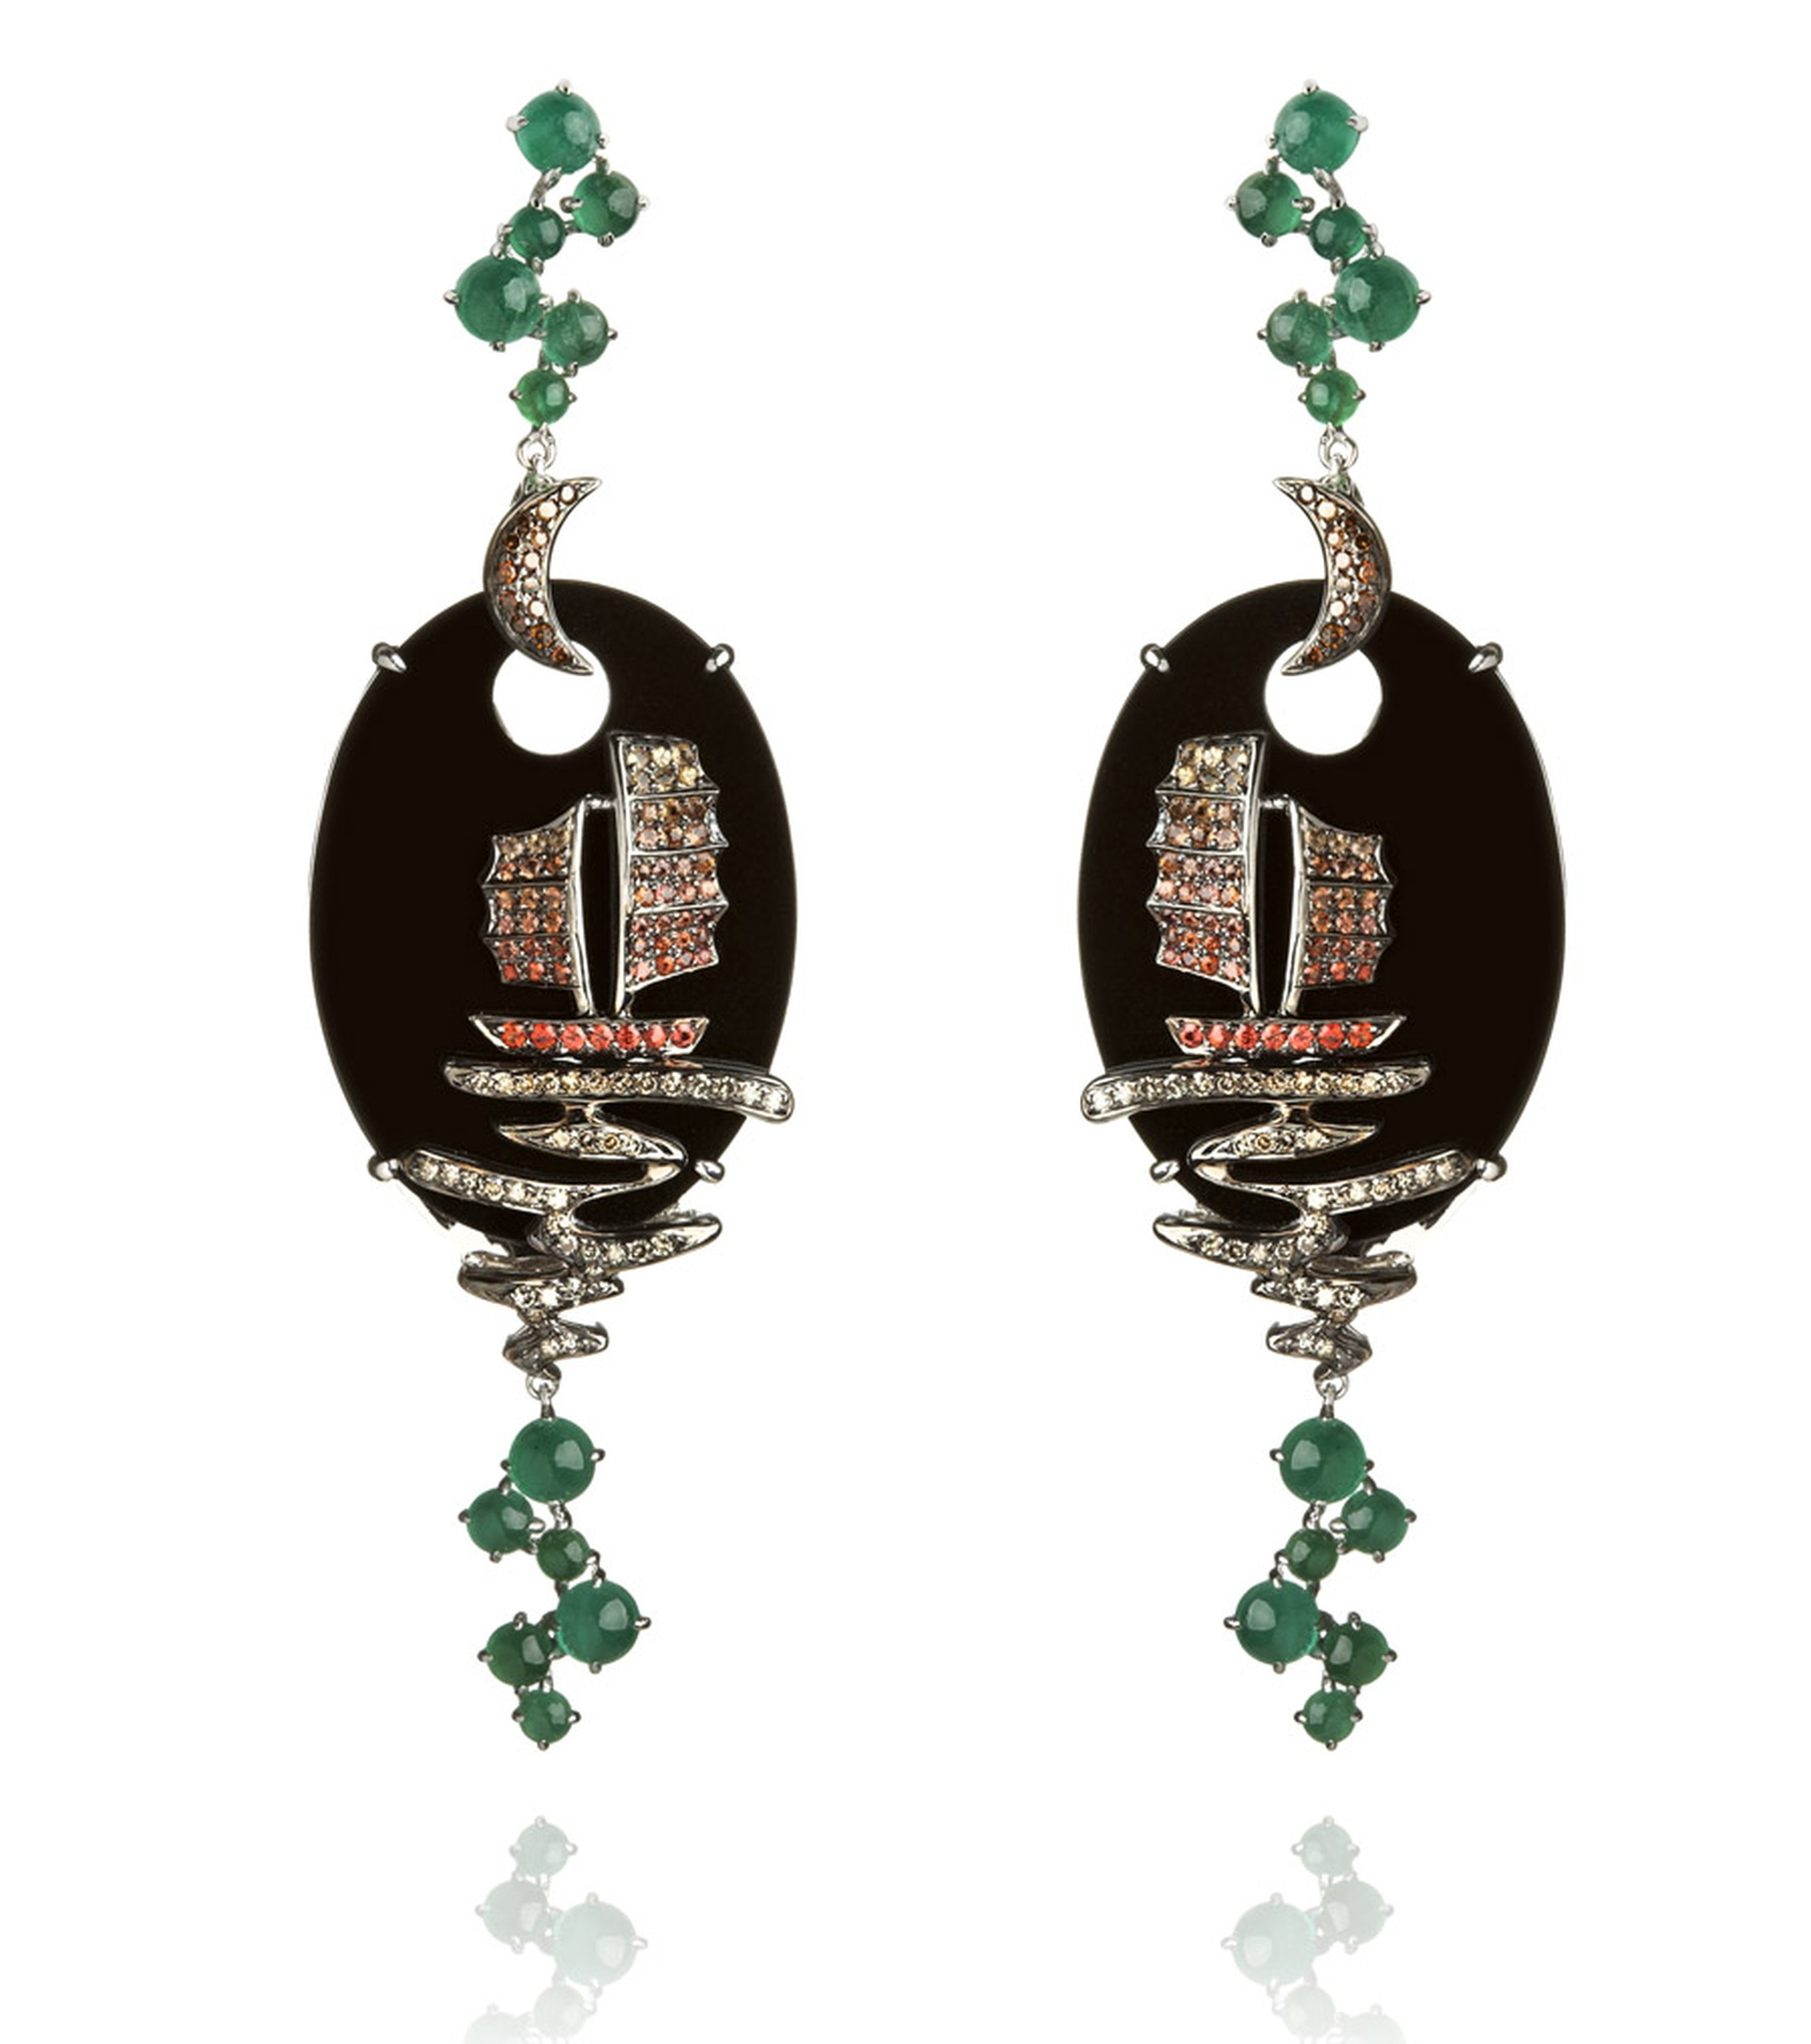 Wendy-Yue-Fantasie-18ct-white-gold--diamond-sapphire-and-emerald-Night-Ship-earrings-By-Wendy-Yue-for--Annnoushka